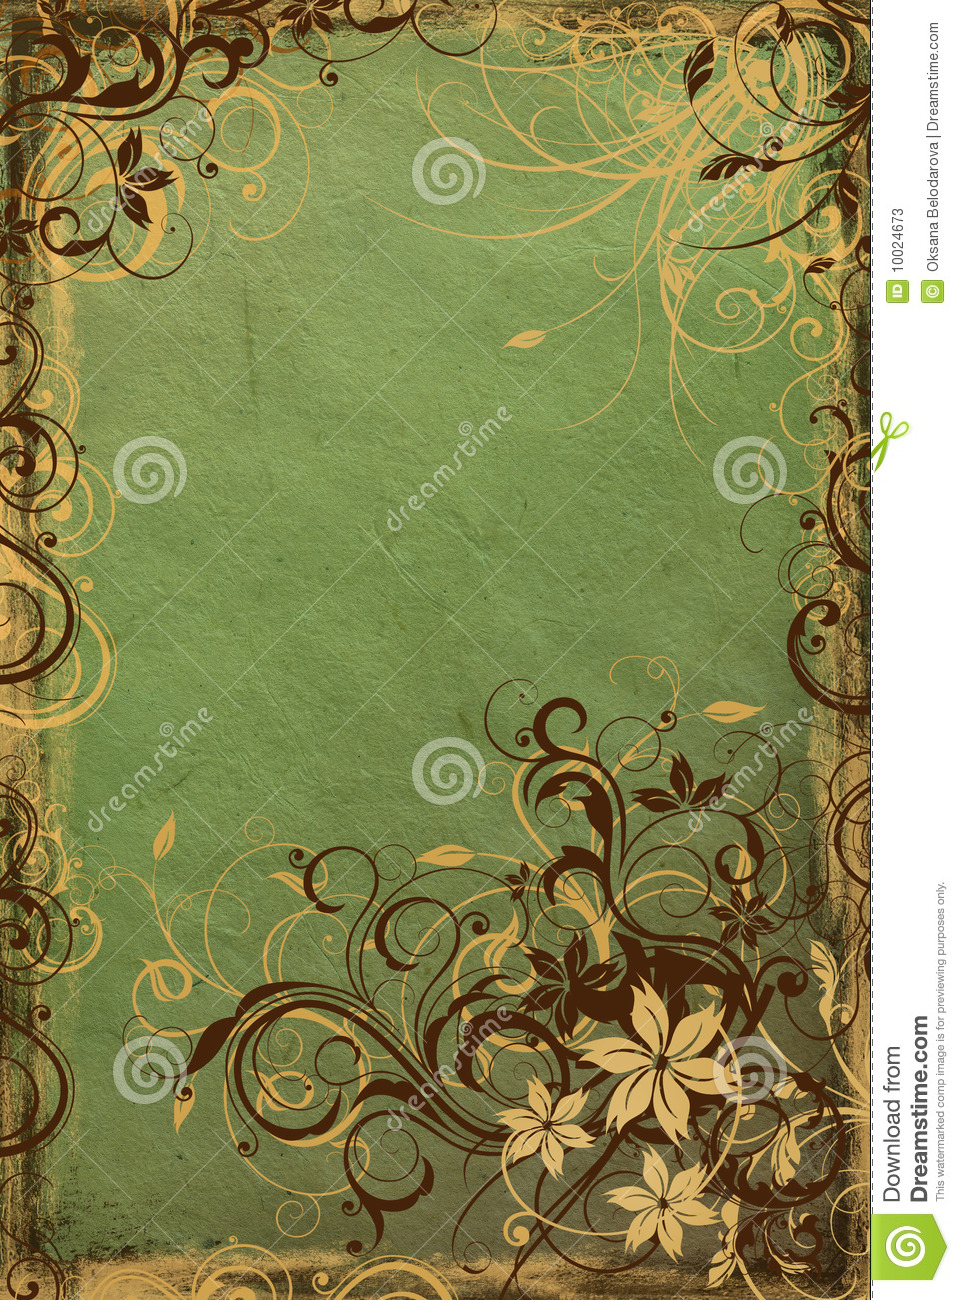 Background From Vintage Green Paper With Swirls Stock